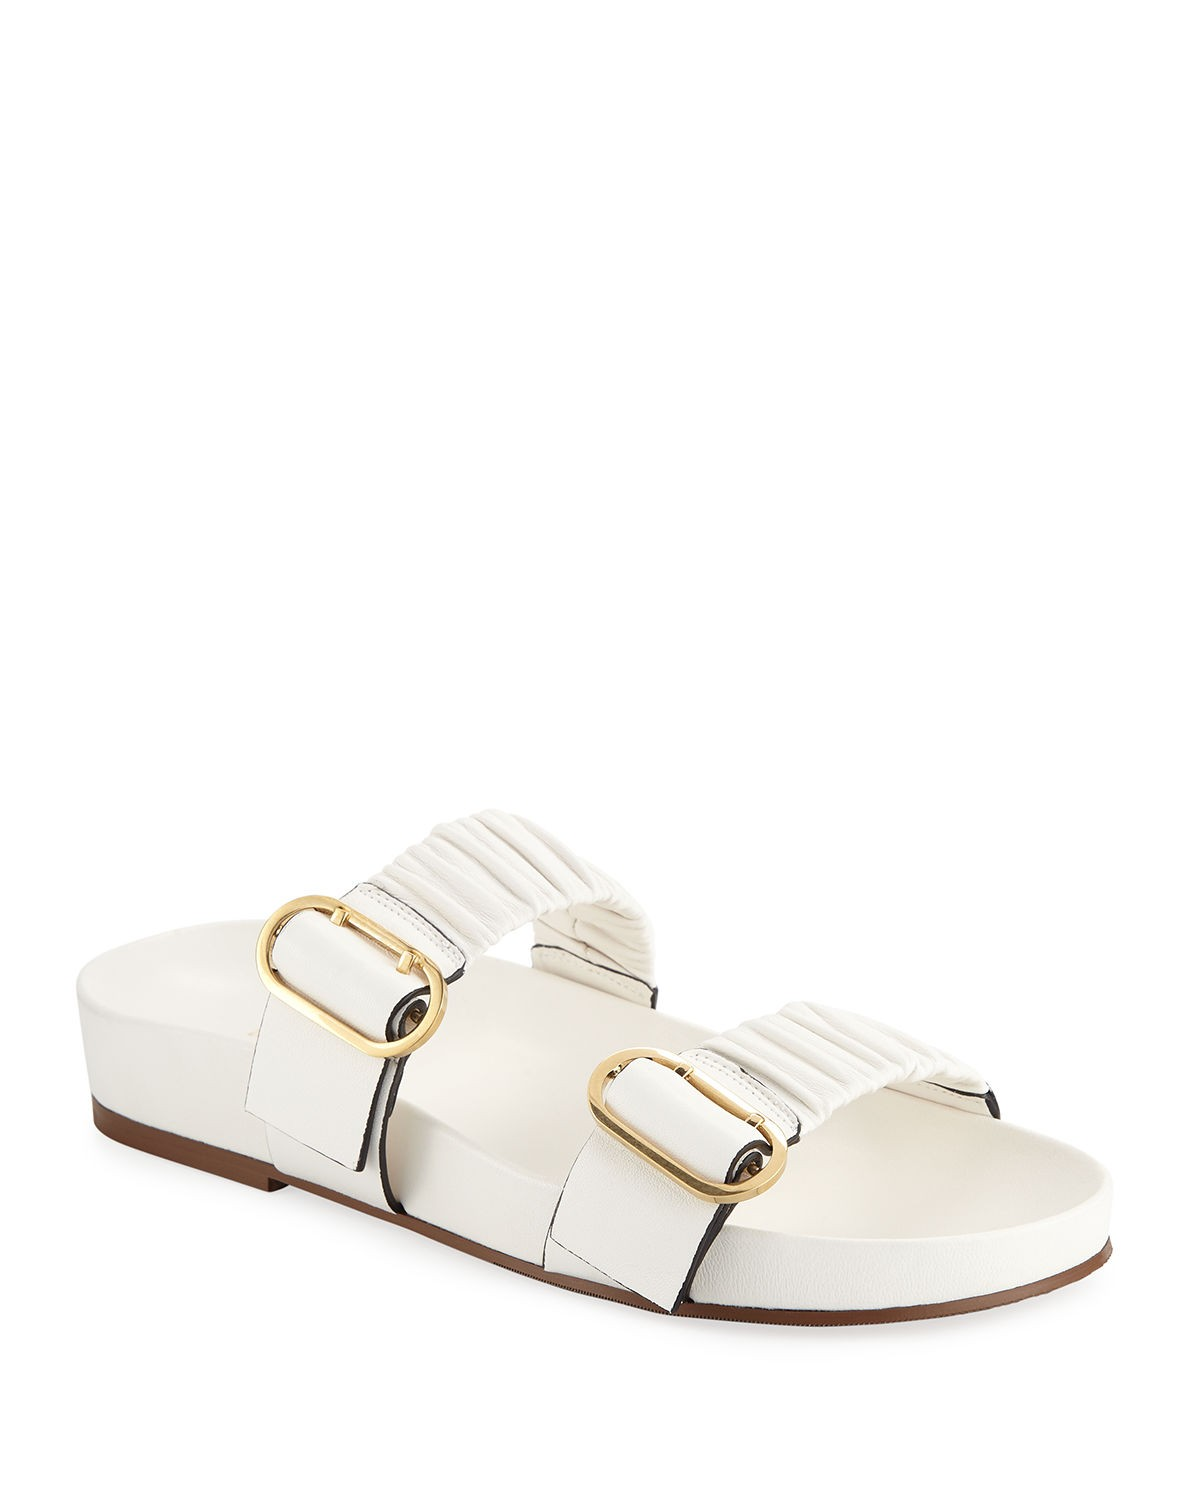 Stuart Weitzman Shalene Buckled Leather Slide Sandals